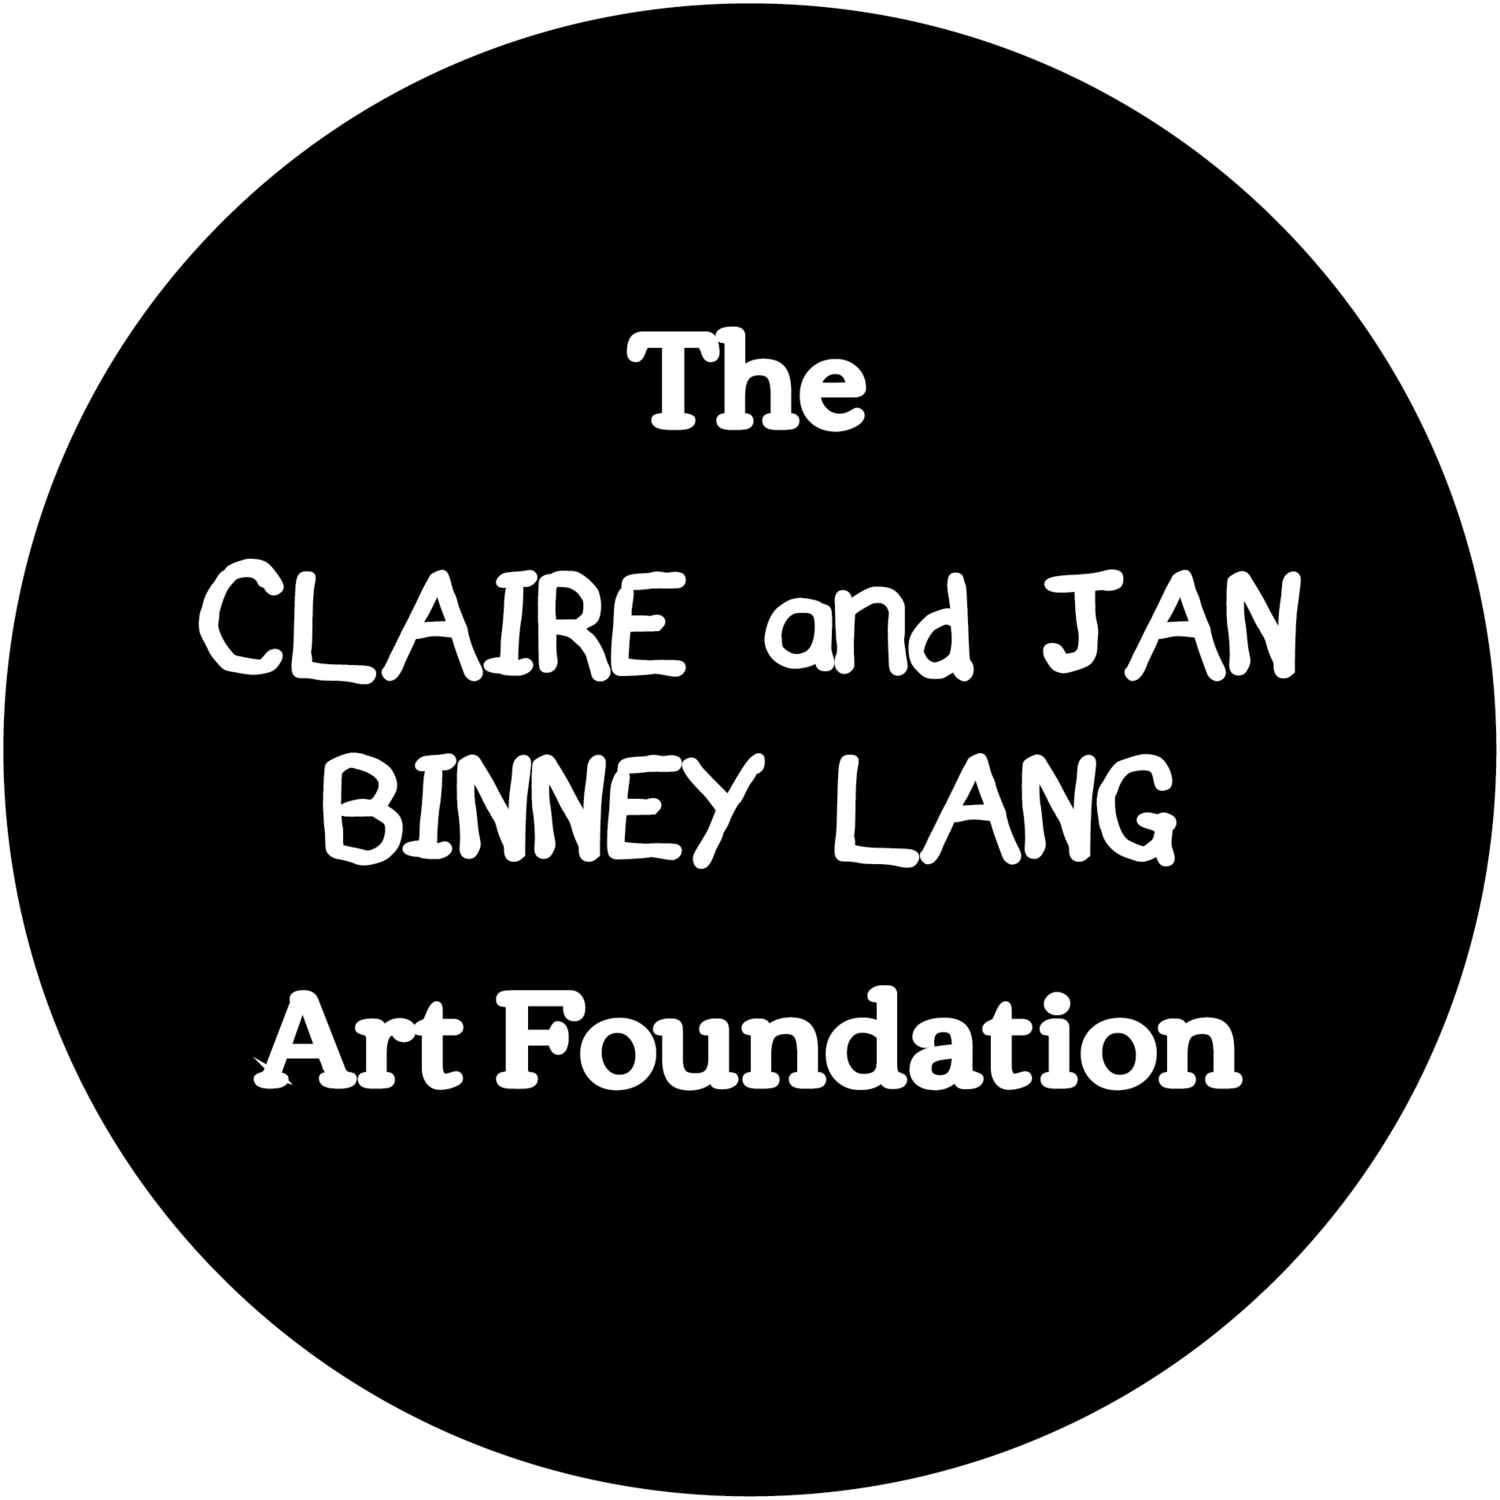 The Claire and Jan Binney Lang Art Foundation